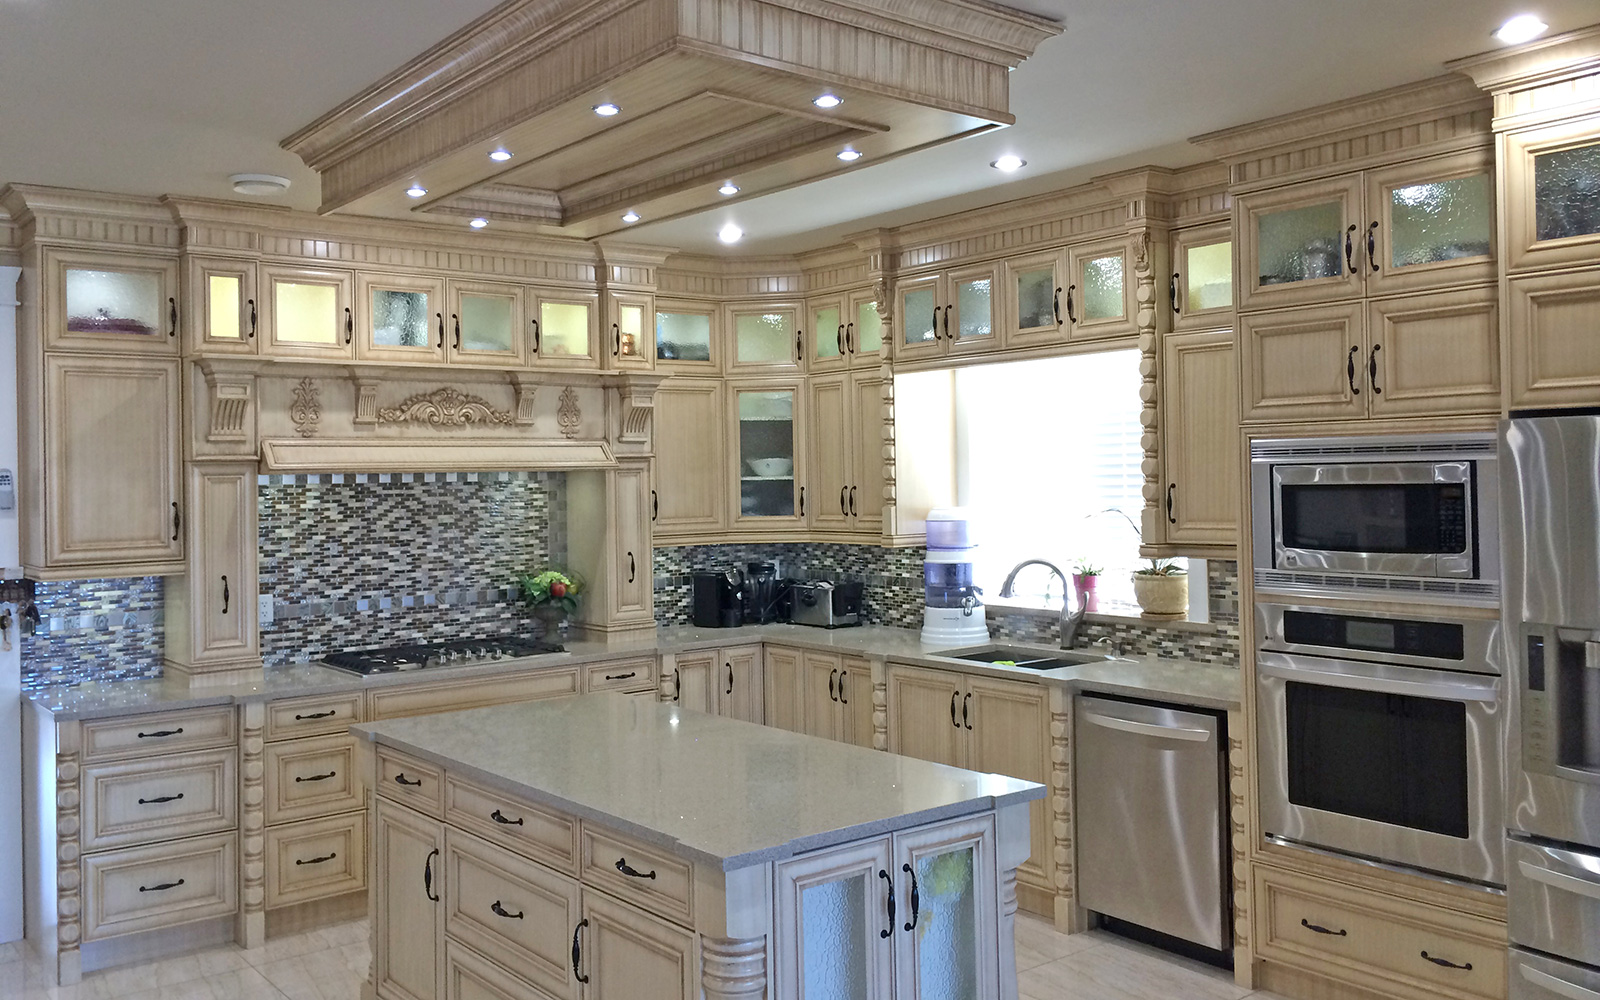 Calgary custom kitchen cabinets ltd countertops for Kitchen cabinets calgary